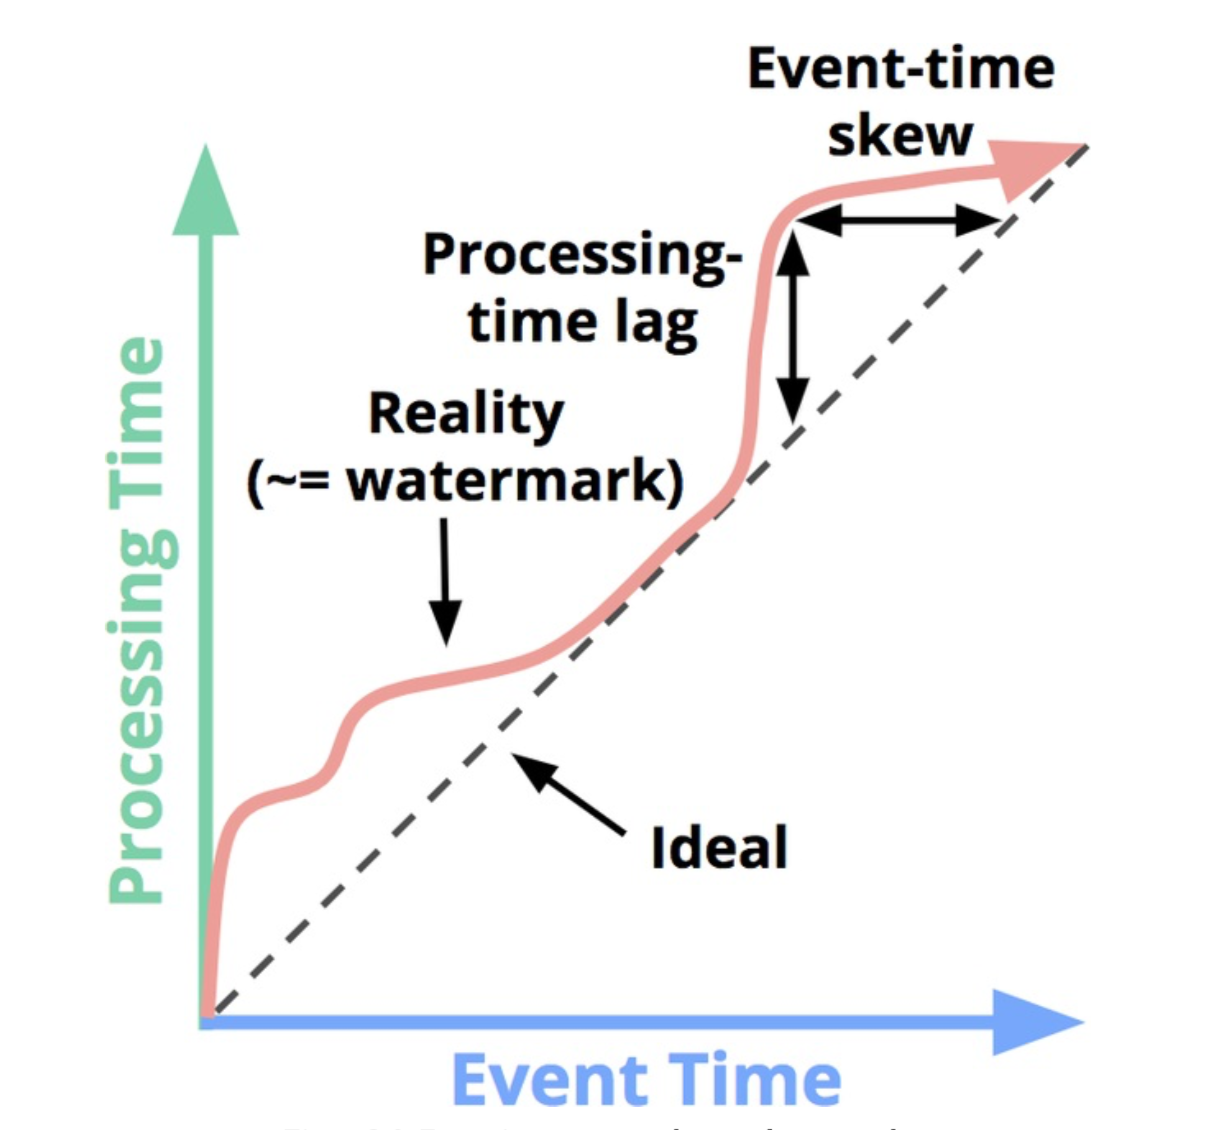 图 1. Event Time/Processing Time/Watermark 三者关系